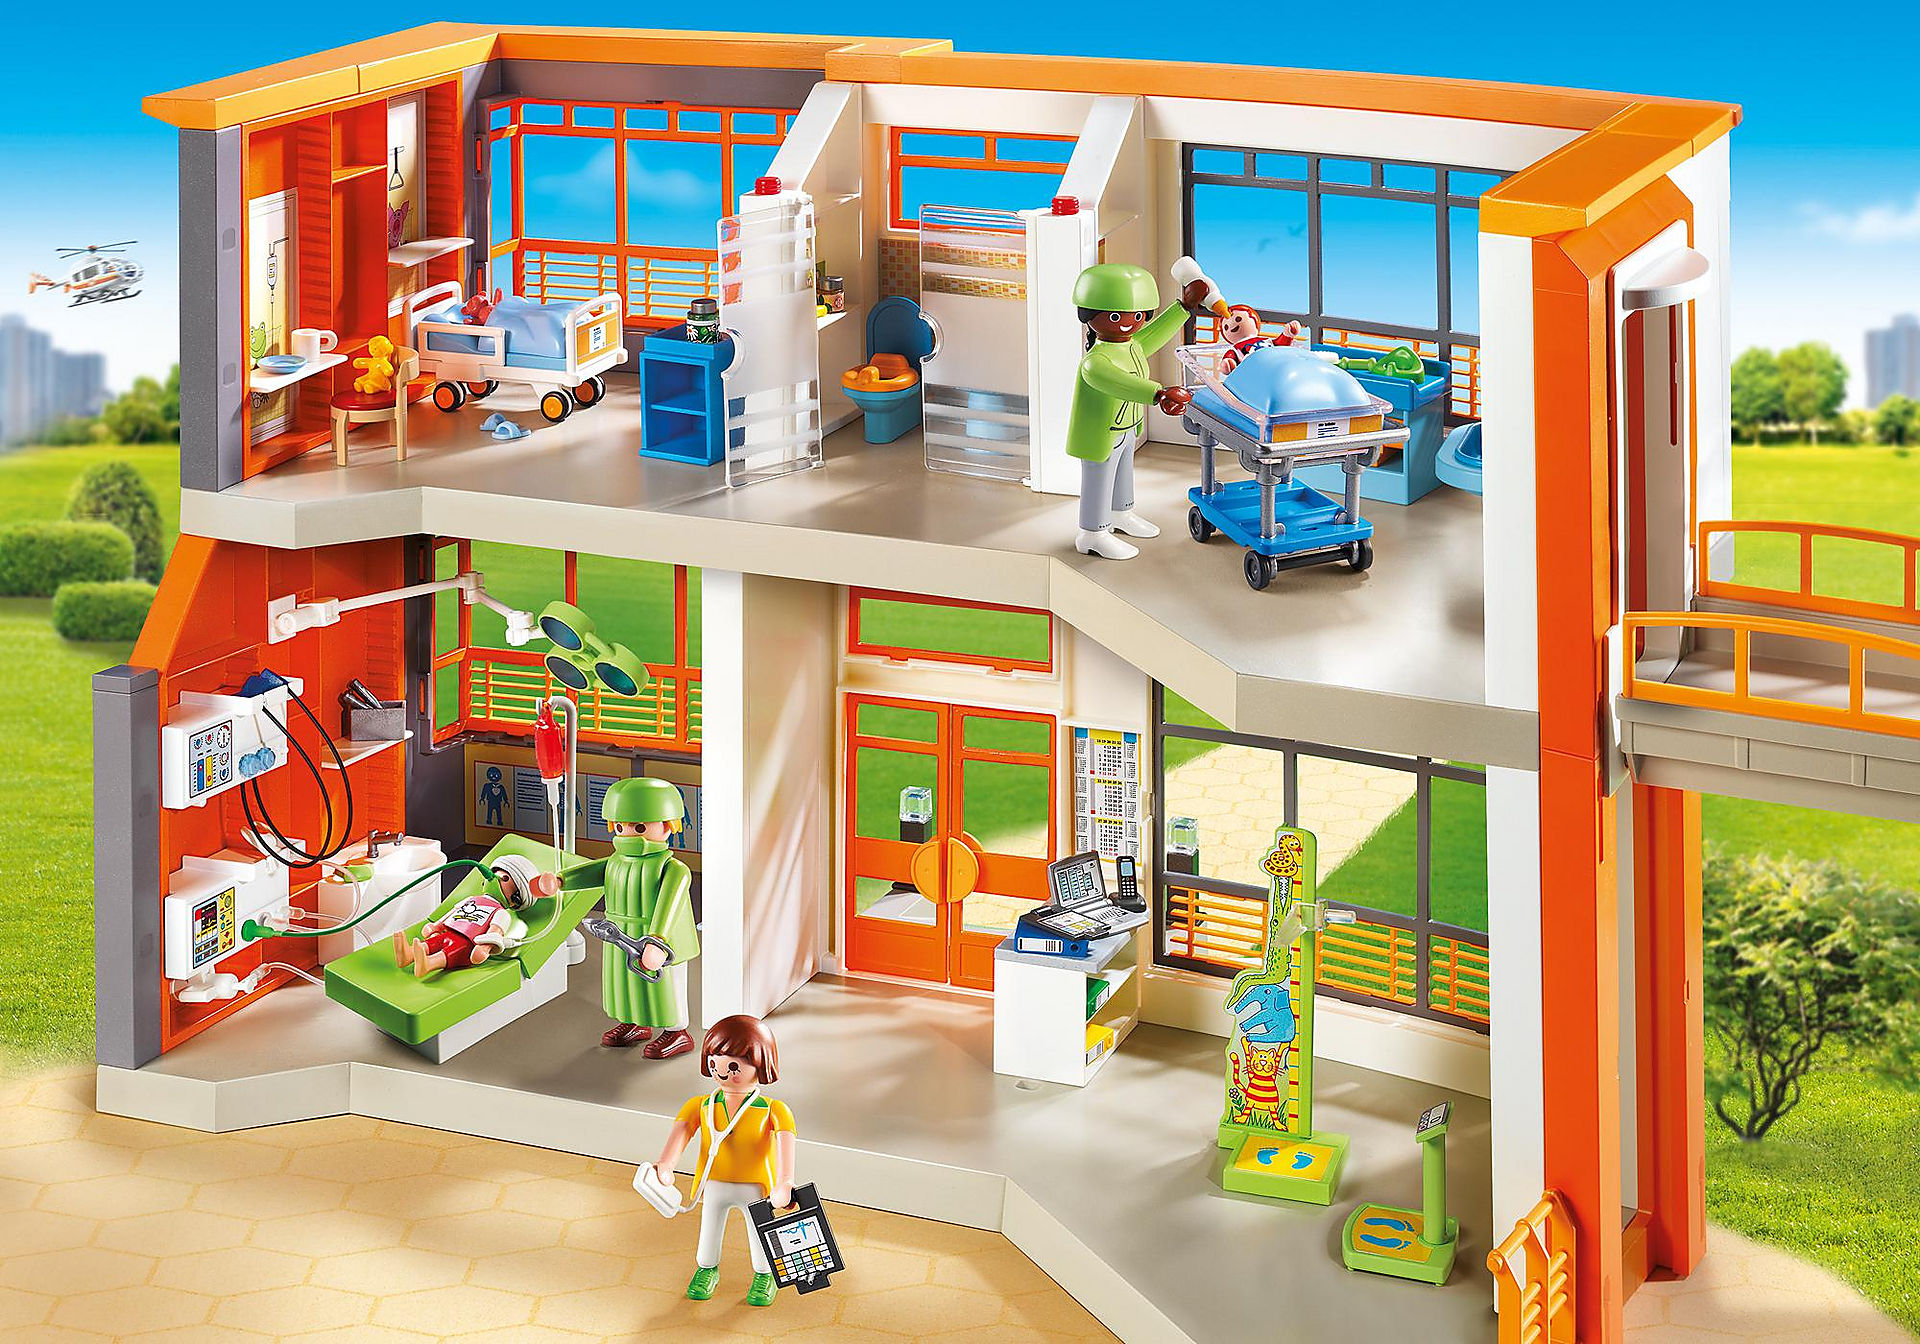 http://media.playmobil.com/i/playmobil/6657_product_detail/Furnished Children's Hospital